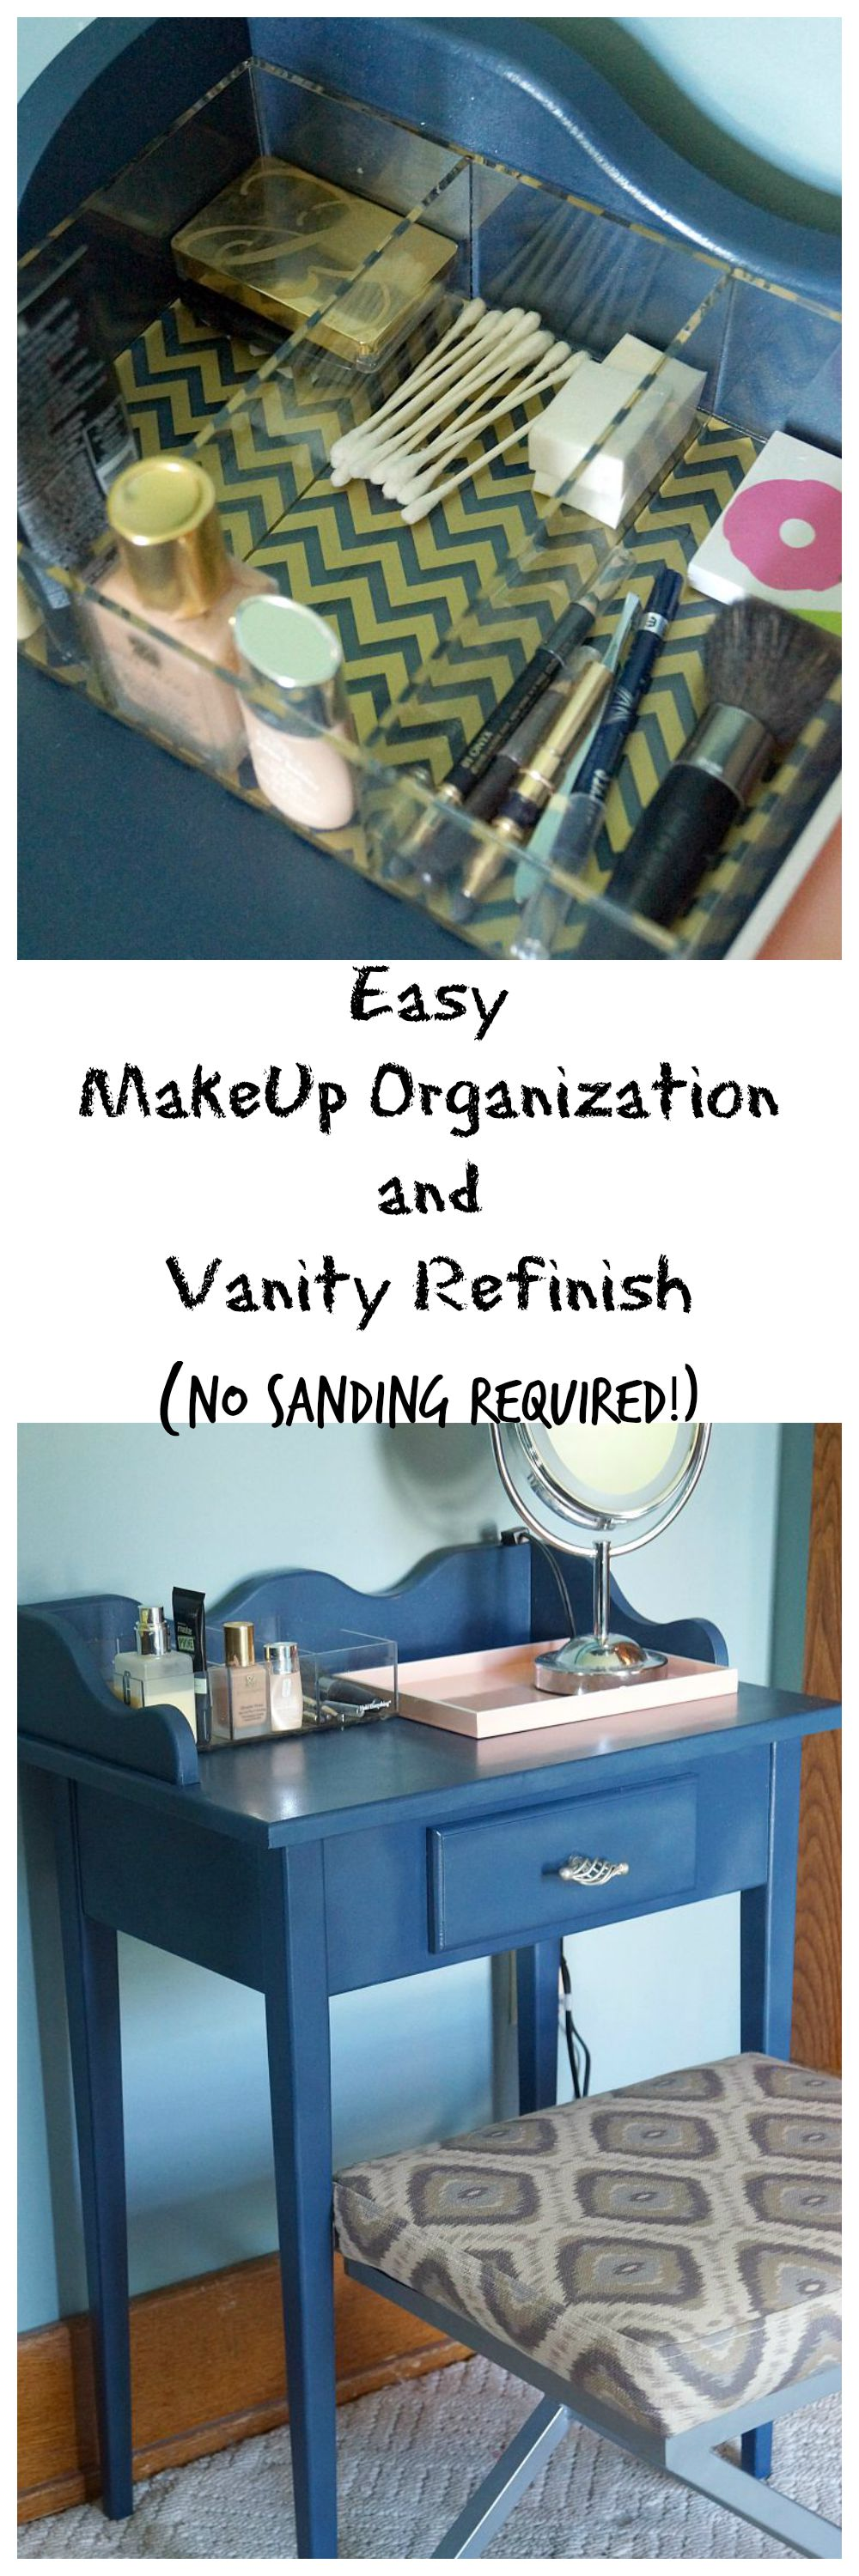 Make Up Organization and Vanity Refinish-No Sanding Required!